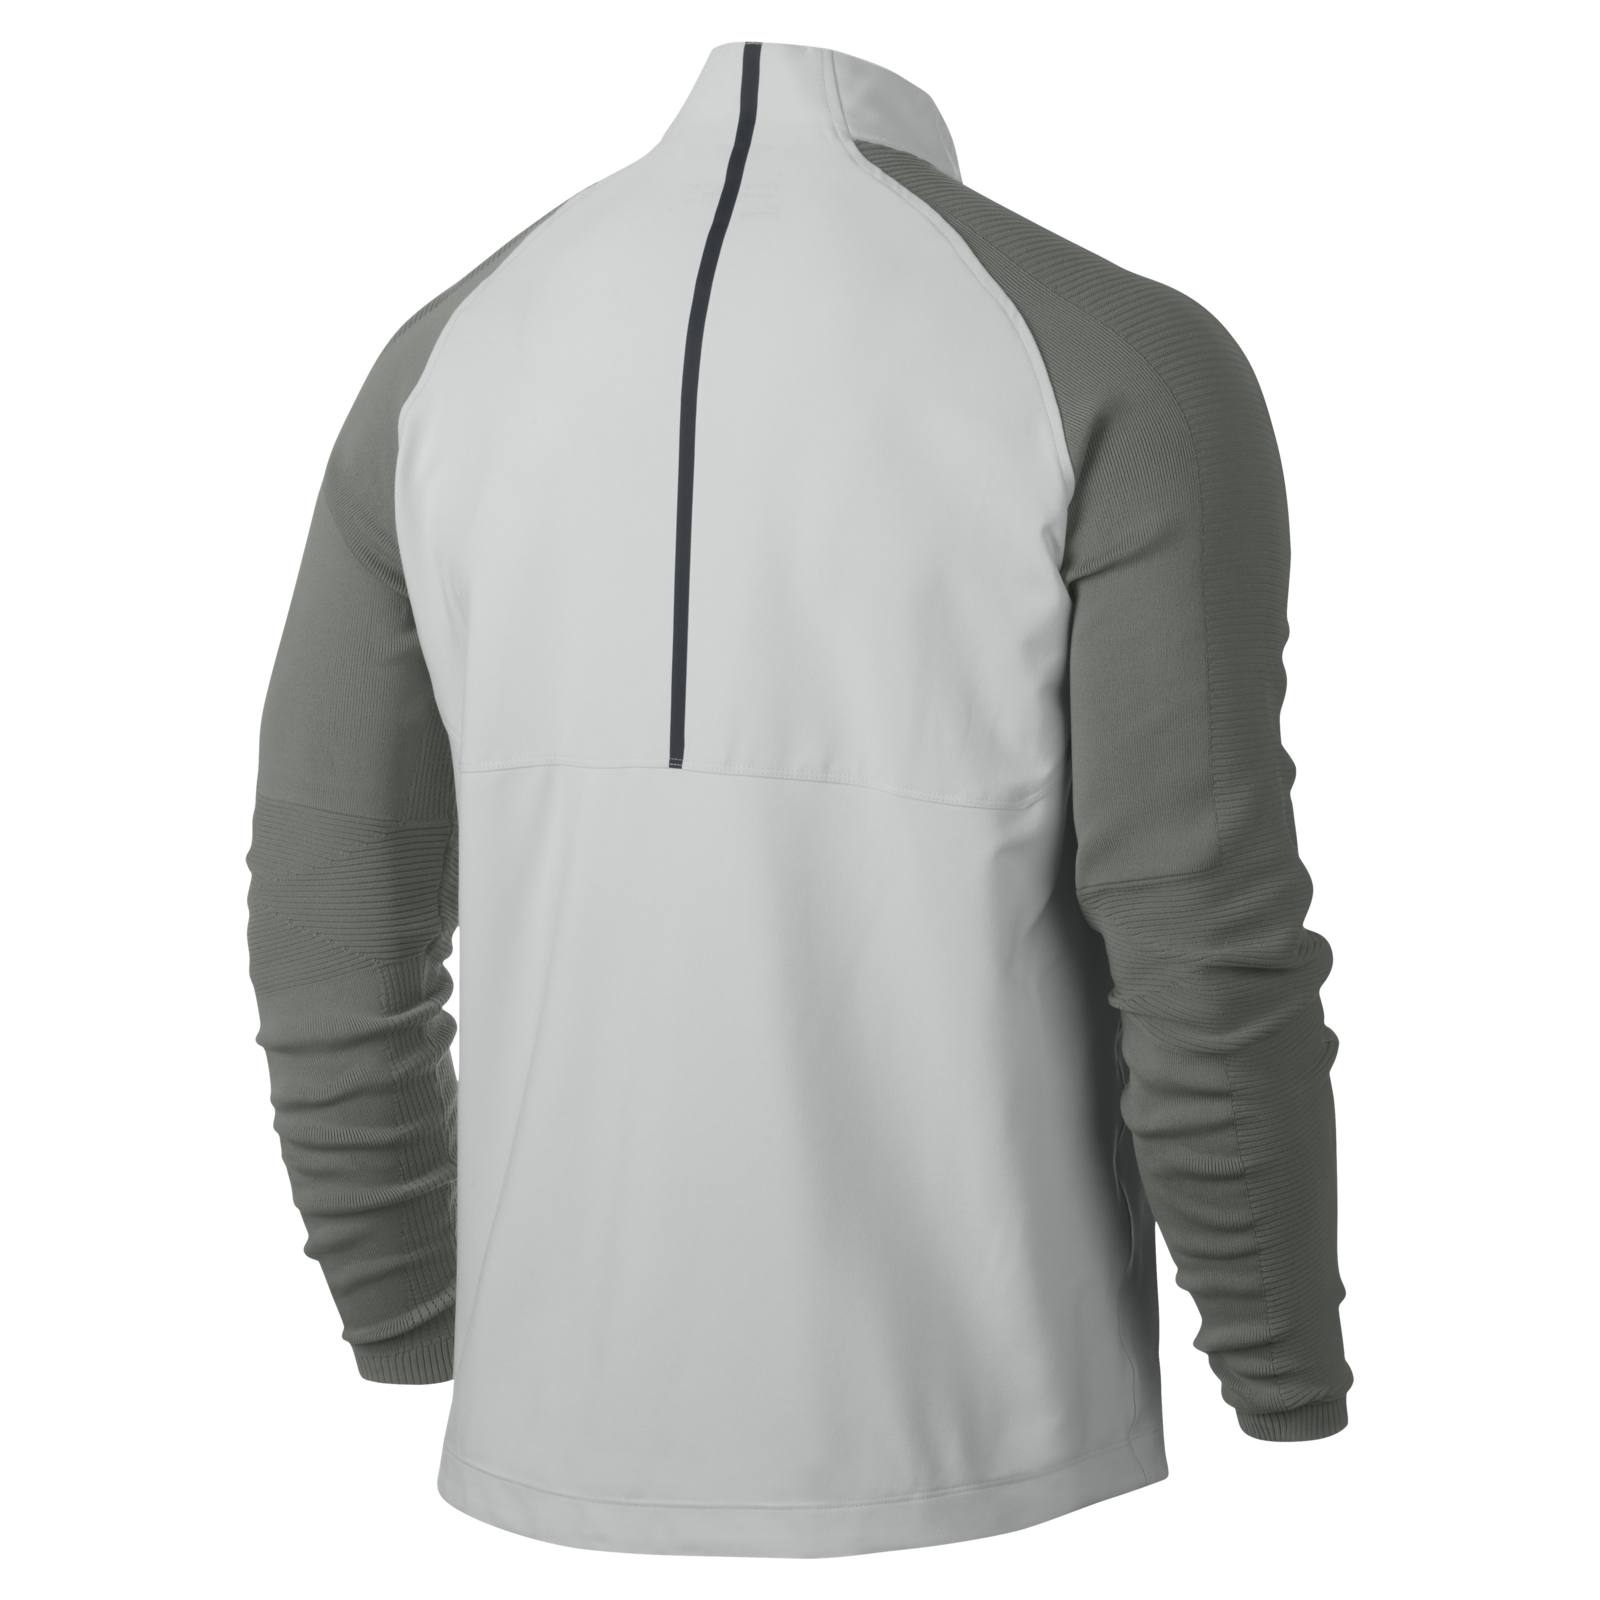 nike golf s new innovation woven cover up is a sweater and jacket in one nike news. Black Bedroom Furniture Sets. Home Design Ideas